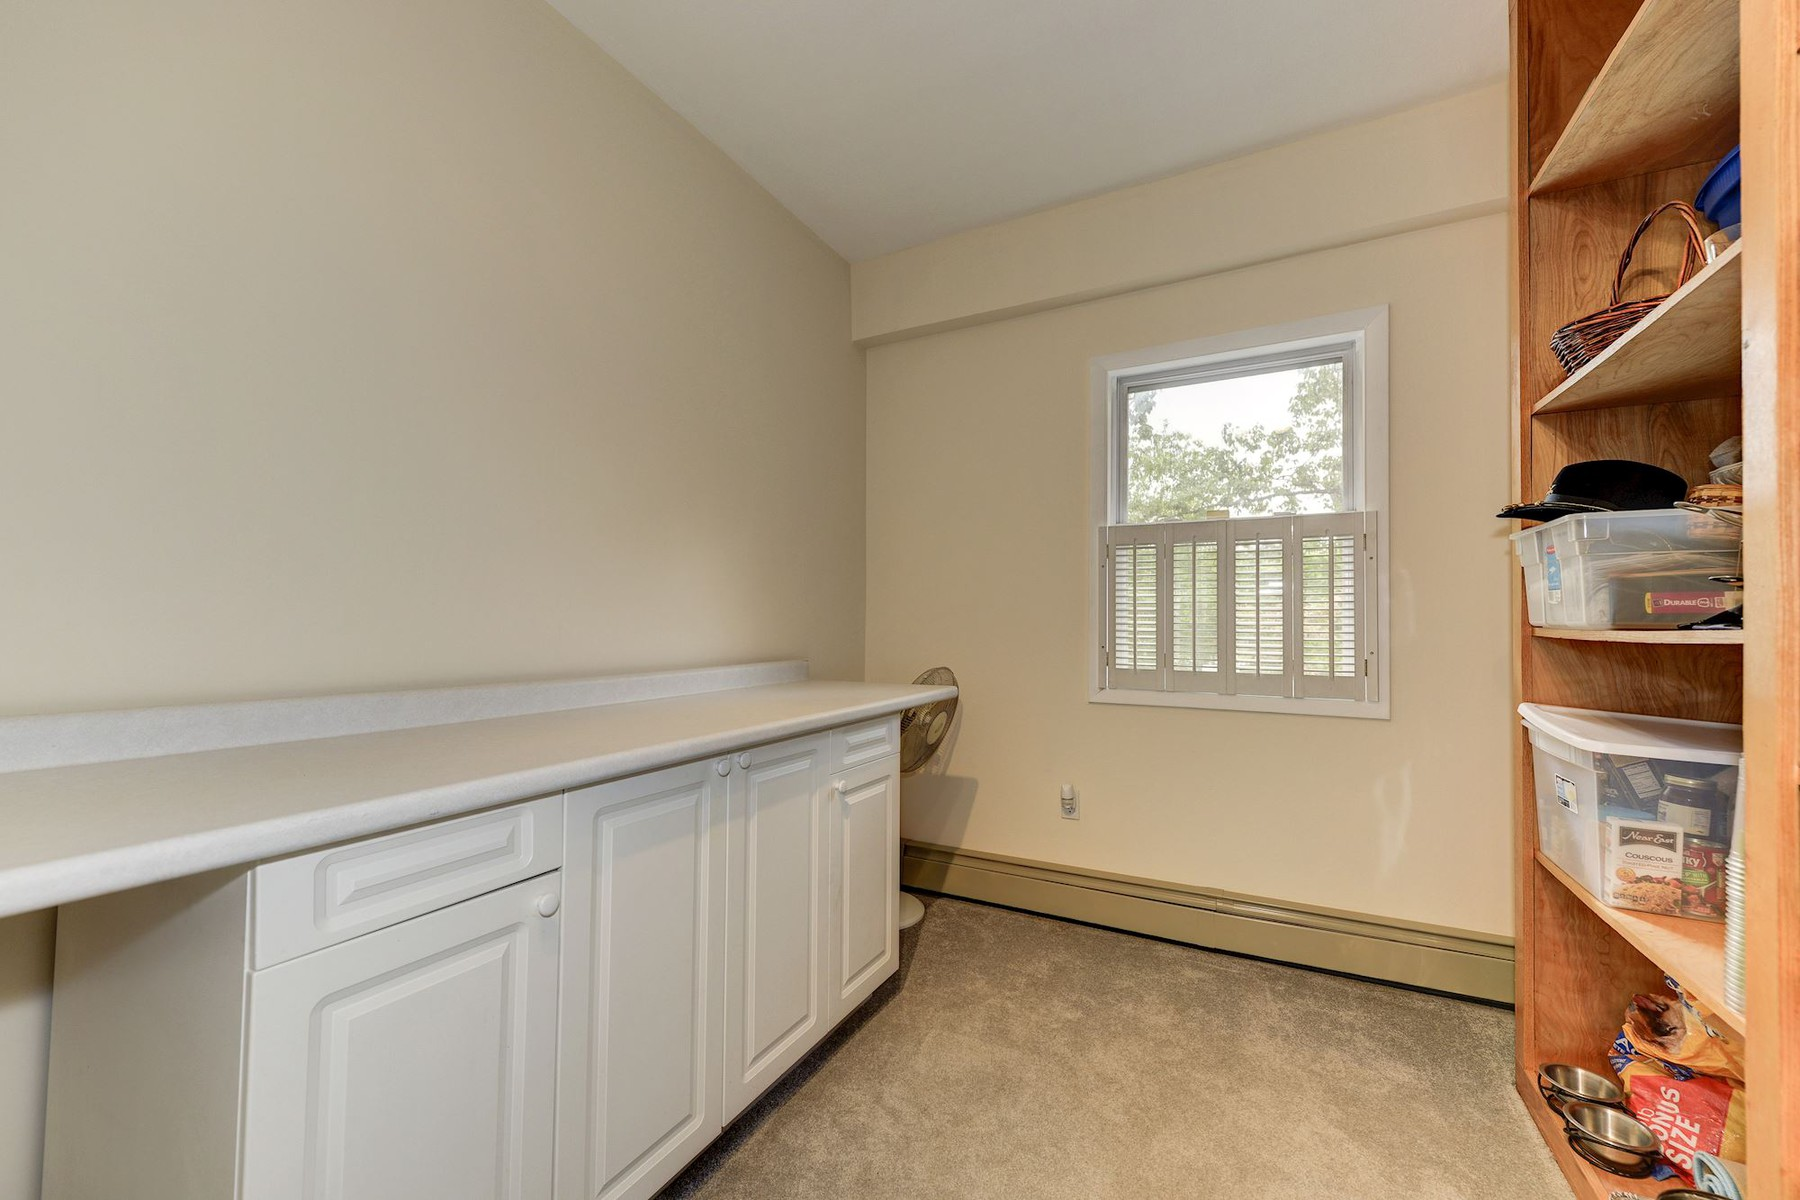 Additional photo for property listing at 7113 Fort Hunt Road, Alexandria 7113 Fort Hunt Rd Alexandria, Virginia 22307 États-Unis